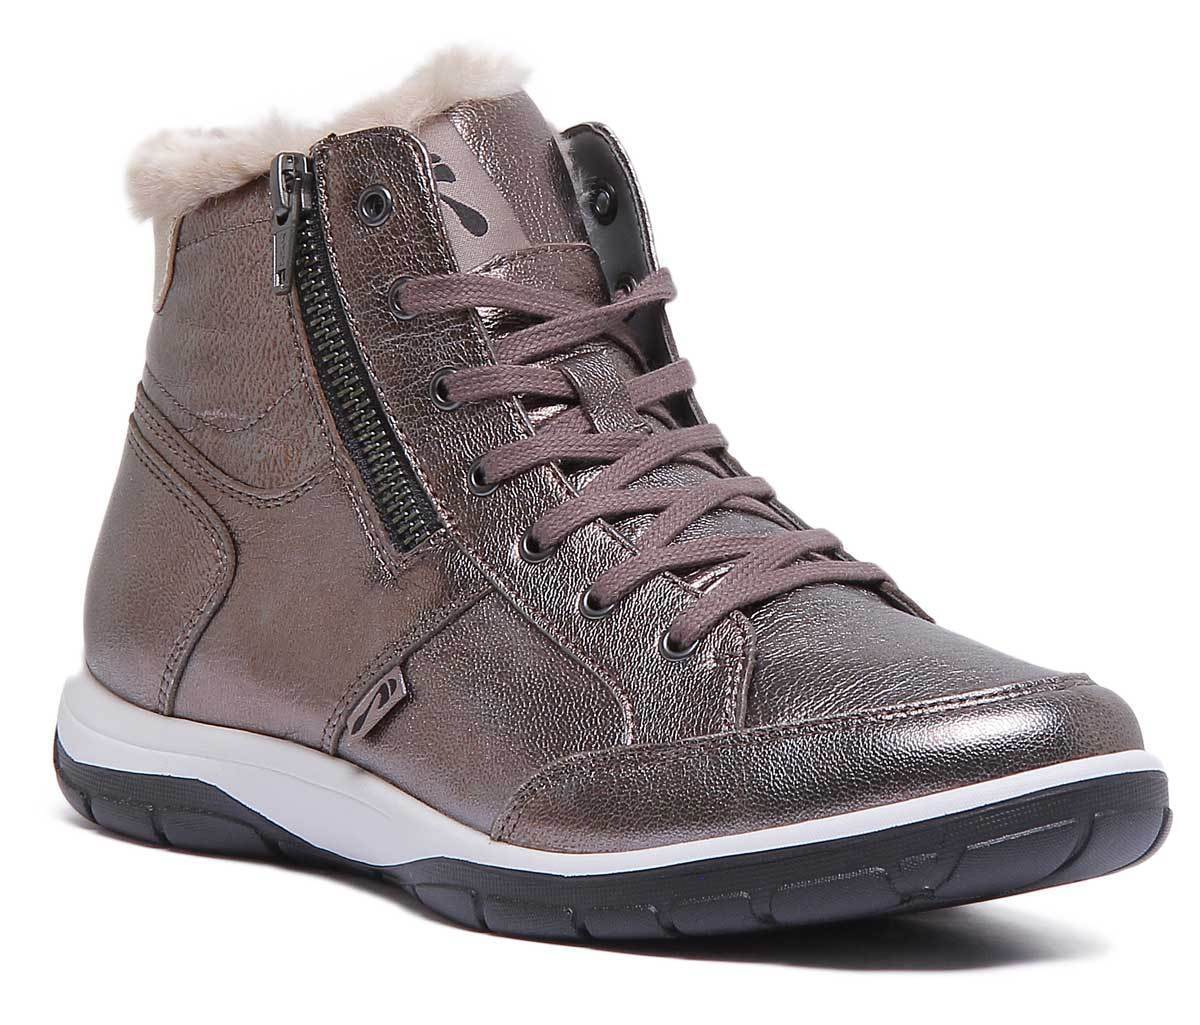 Strive Chatsworth Womens Antracite Leather Matt Ankle Boots UK Size 3 - 8